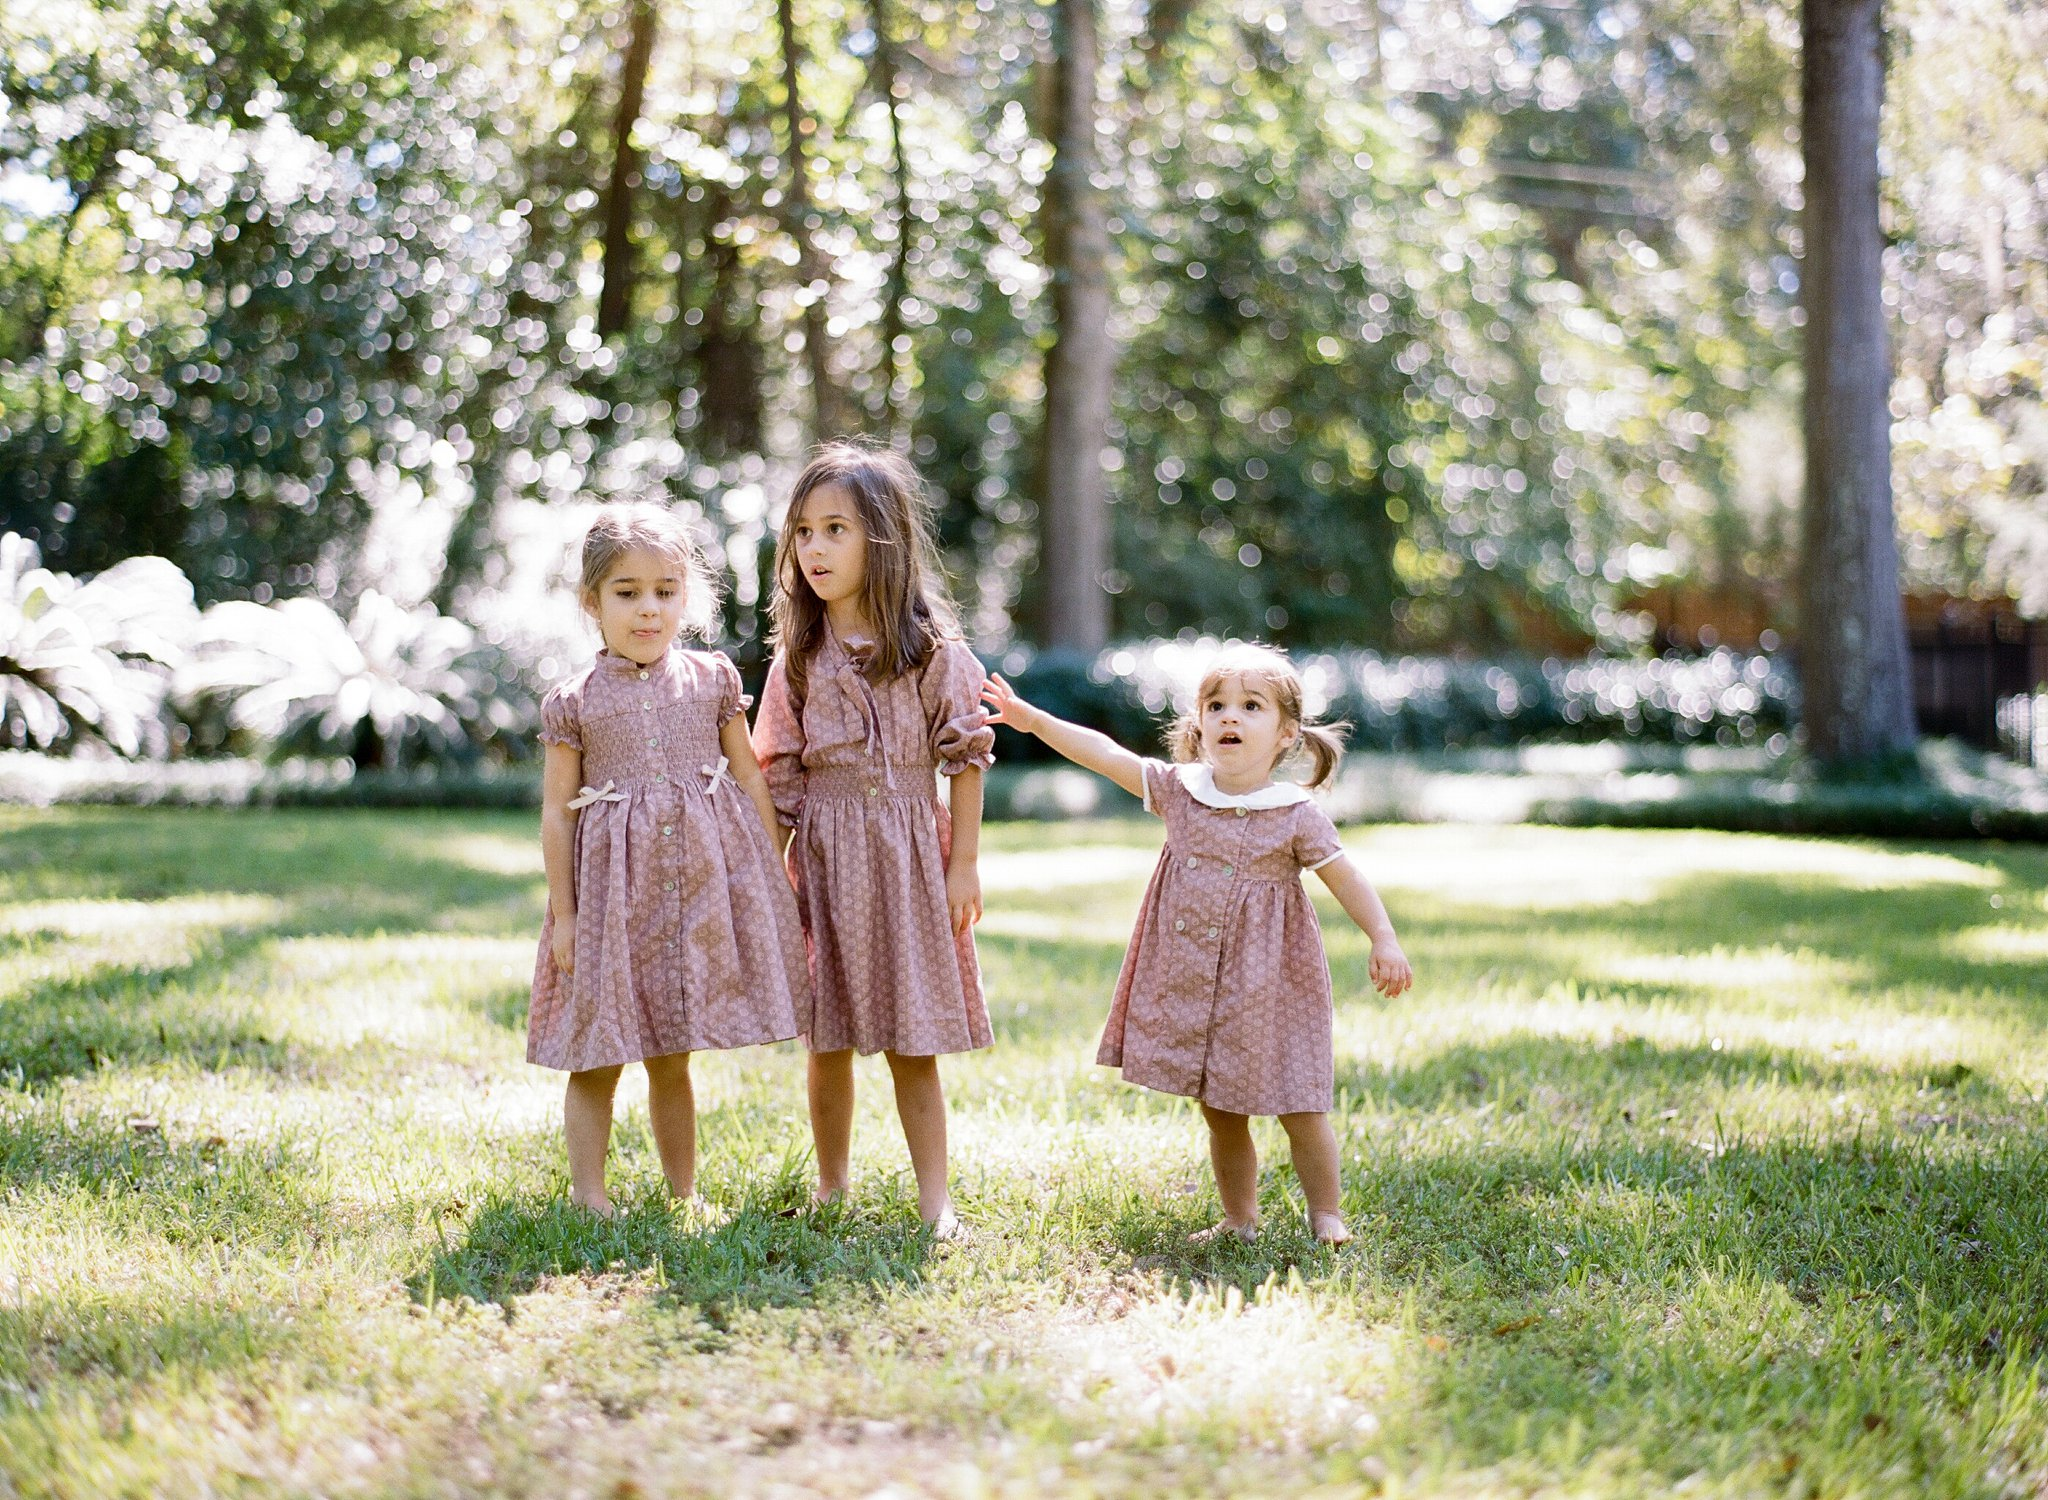 tallahassee family photographer shannon griffin photography_0035.jpg